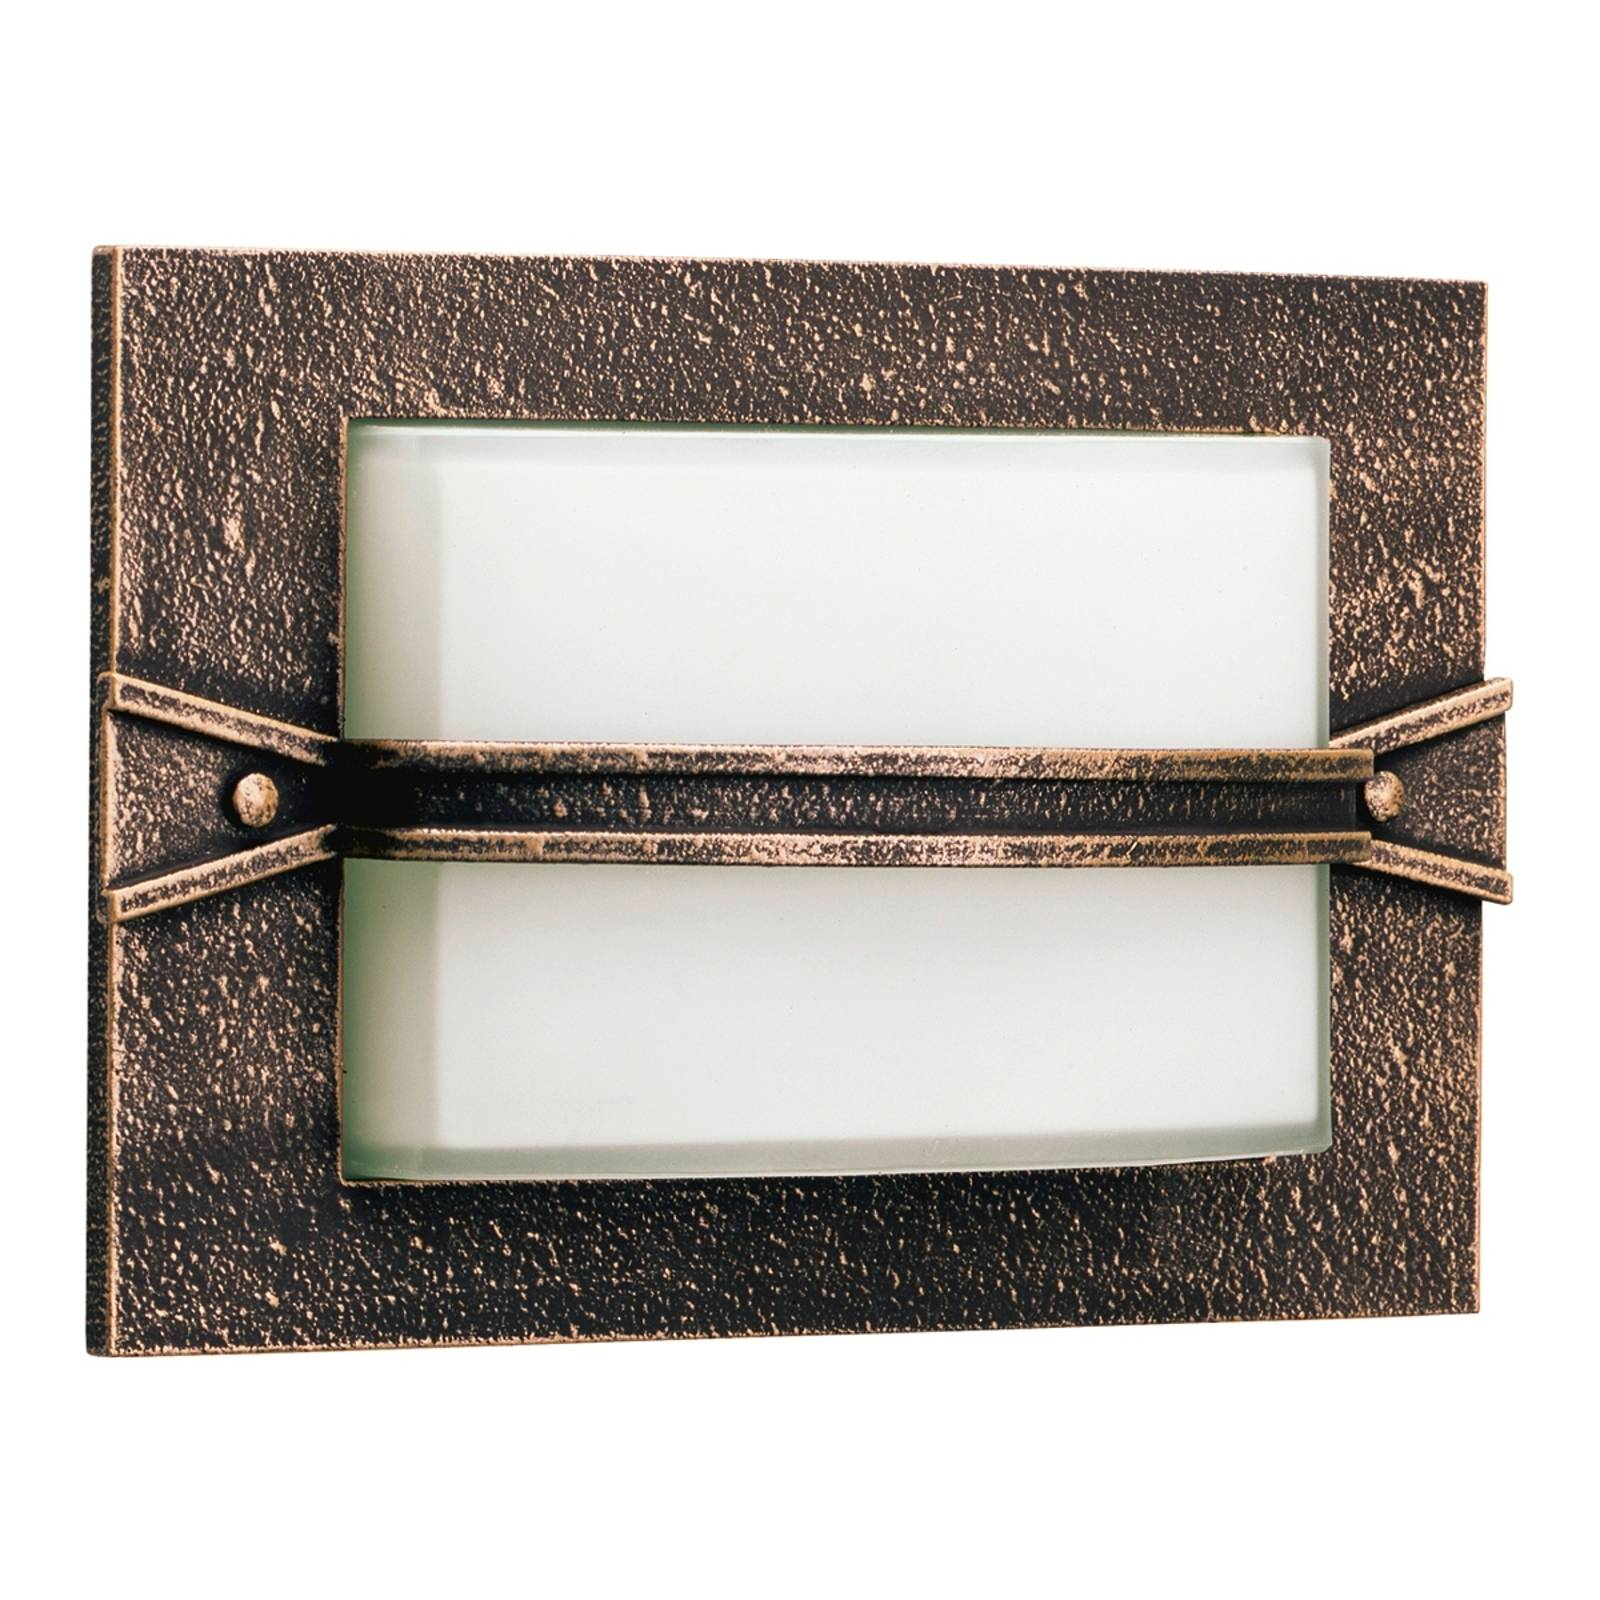 Country-style Ällin outdoor wall light, brown from Albert Leuchten